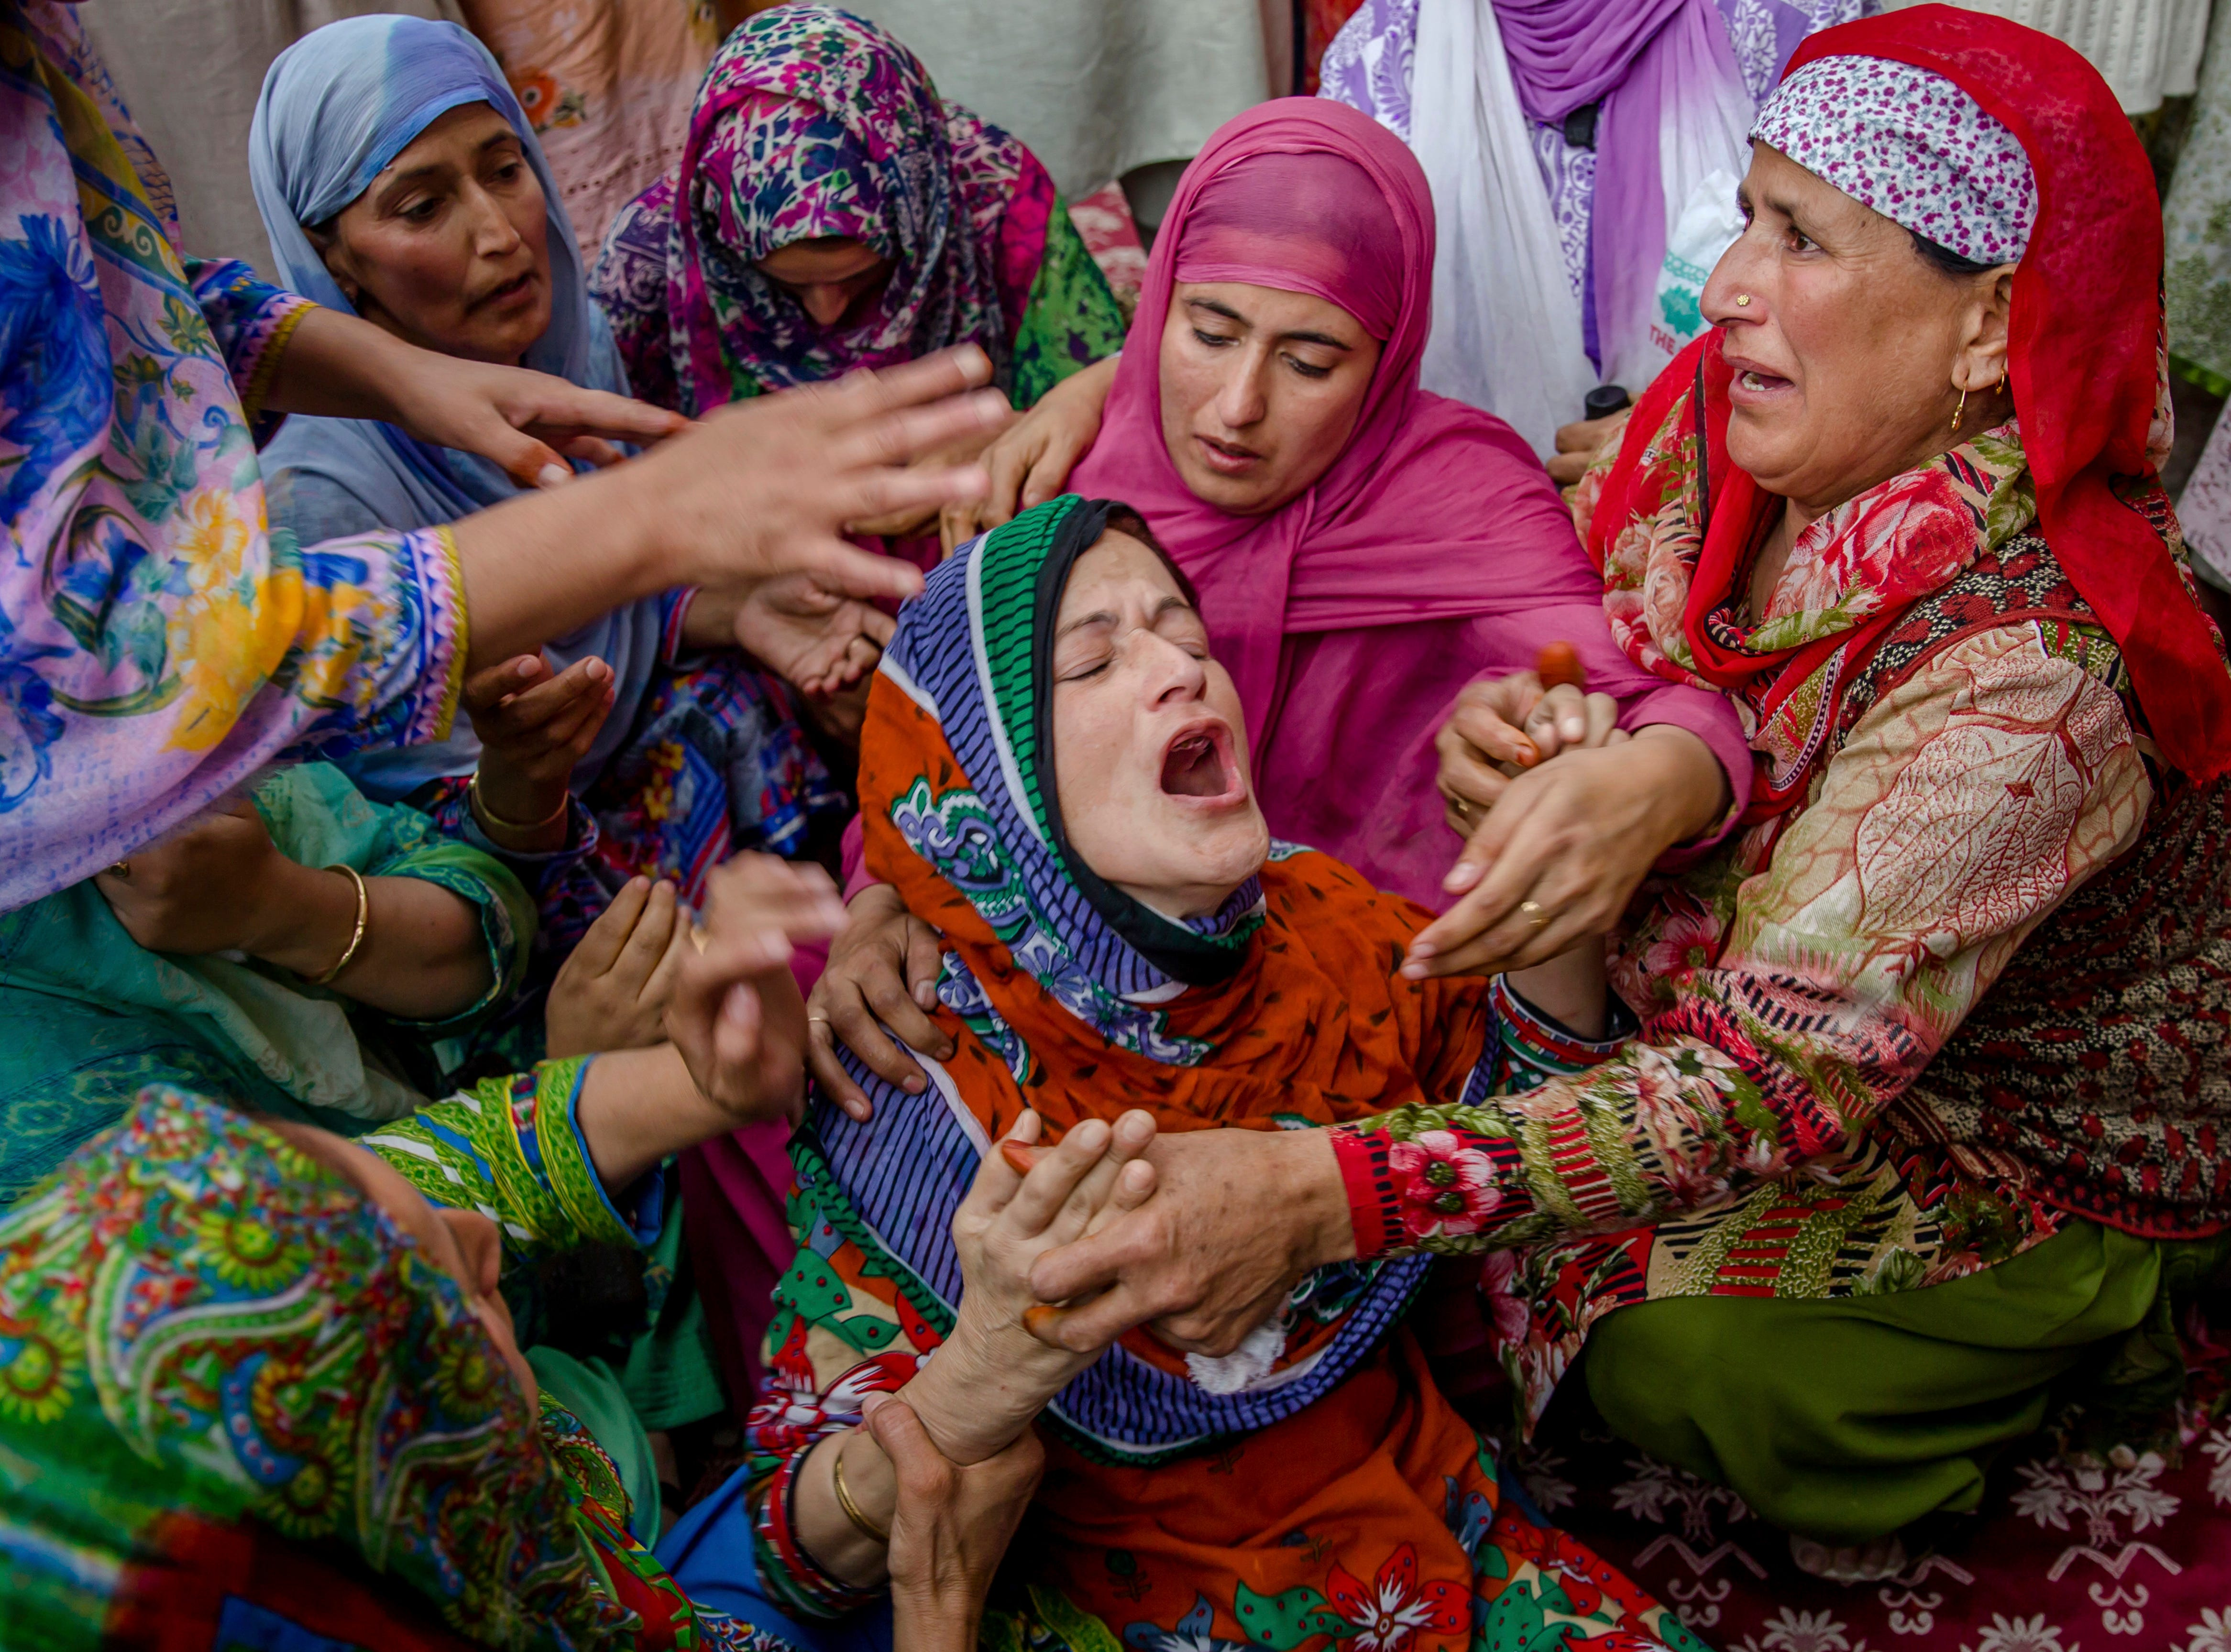 Ruksana Nazir is comforted during the funeral of her husband, Nazir Ahmed Wani, in Srinagar, Indian-controlled Kashmir, Friday, Oct. 5, 2018. Suspected rebels on Friday shot and killed two activists, which included Wani, affiliated with a pro-India Kashmiri political group in the disputed region's main city, officials said.